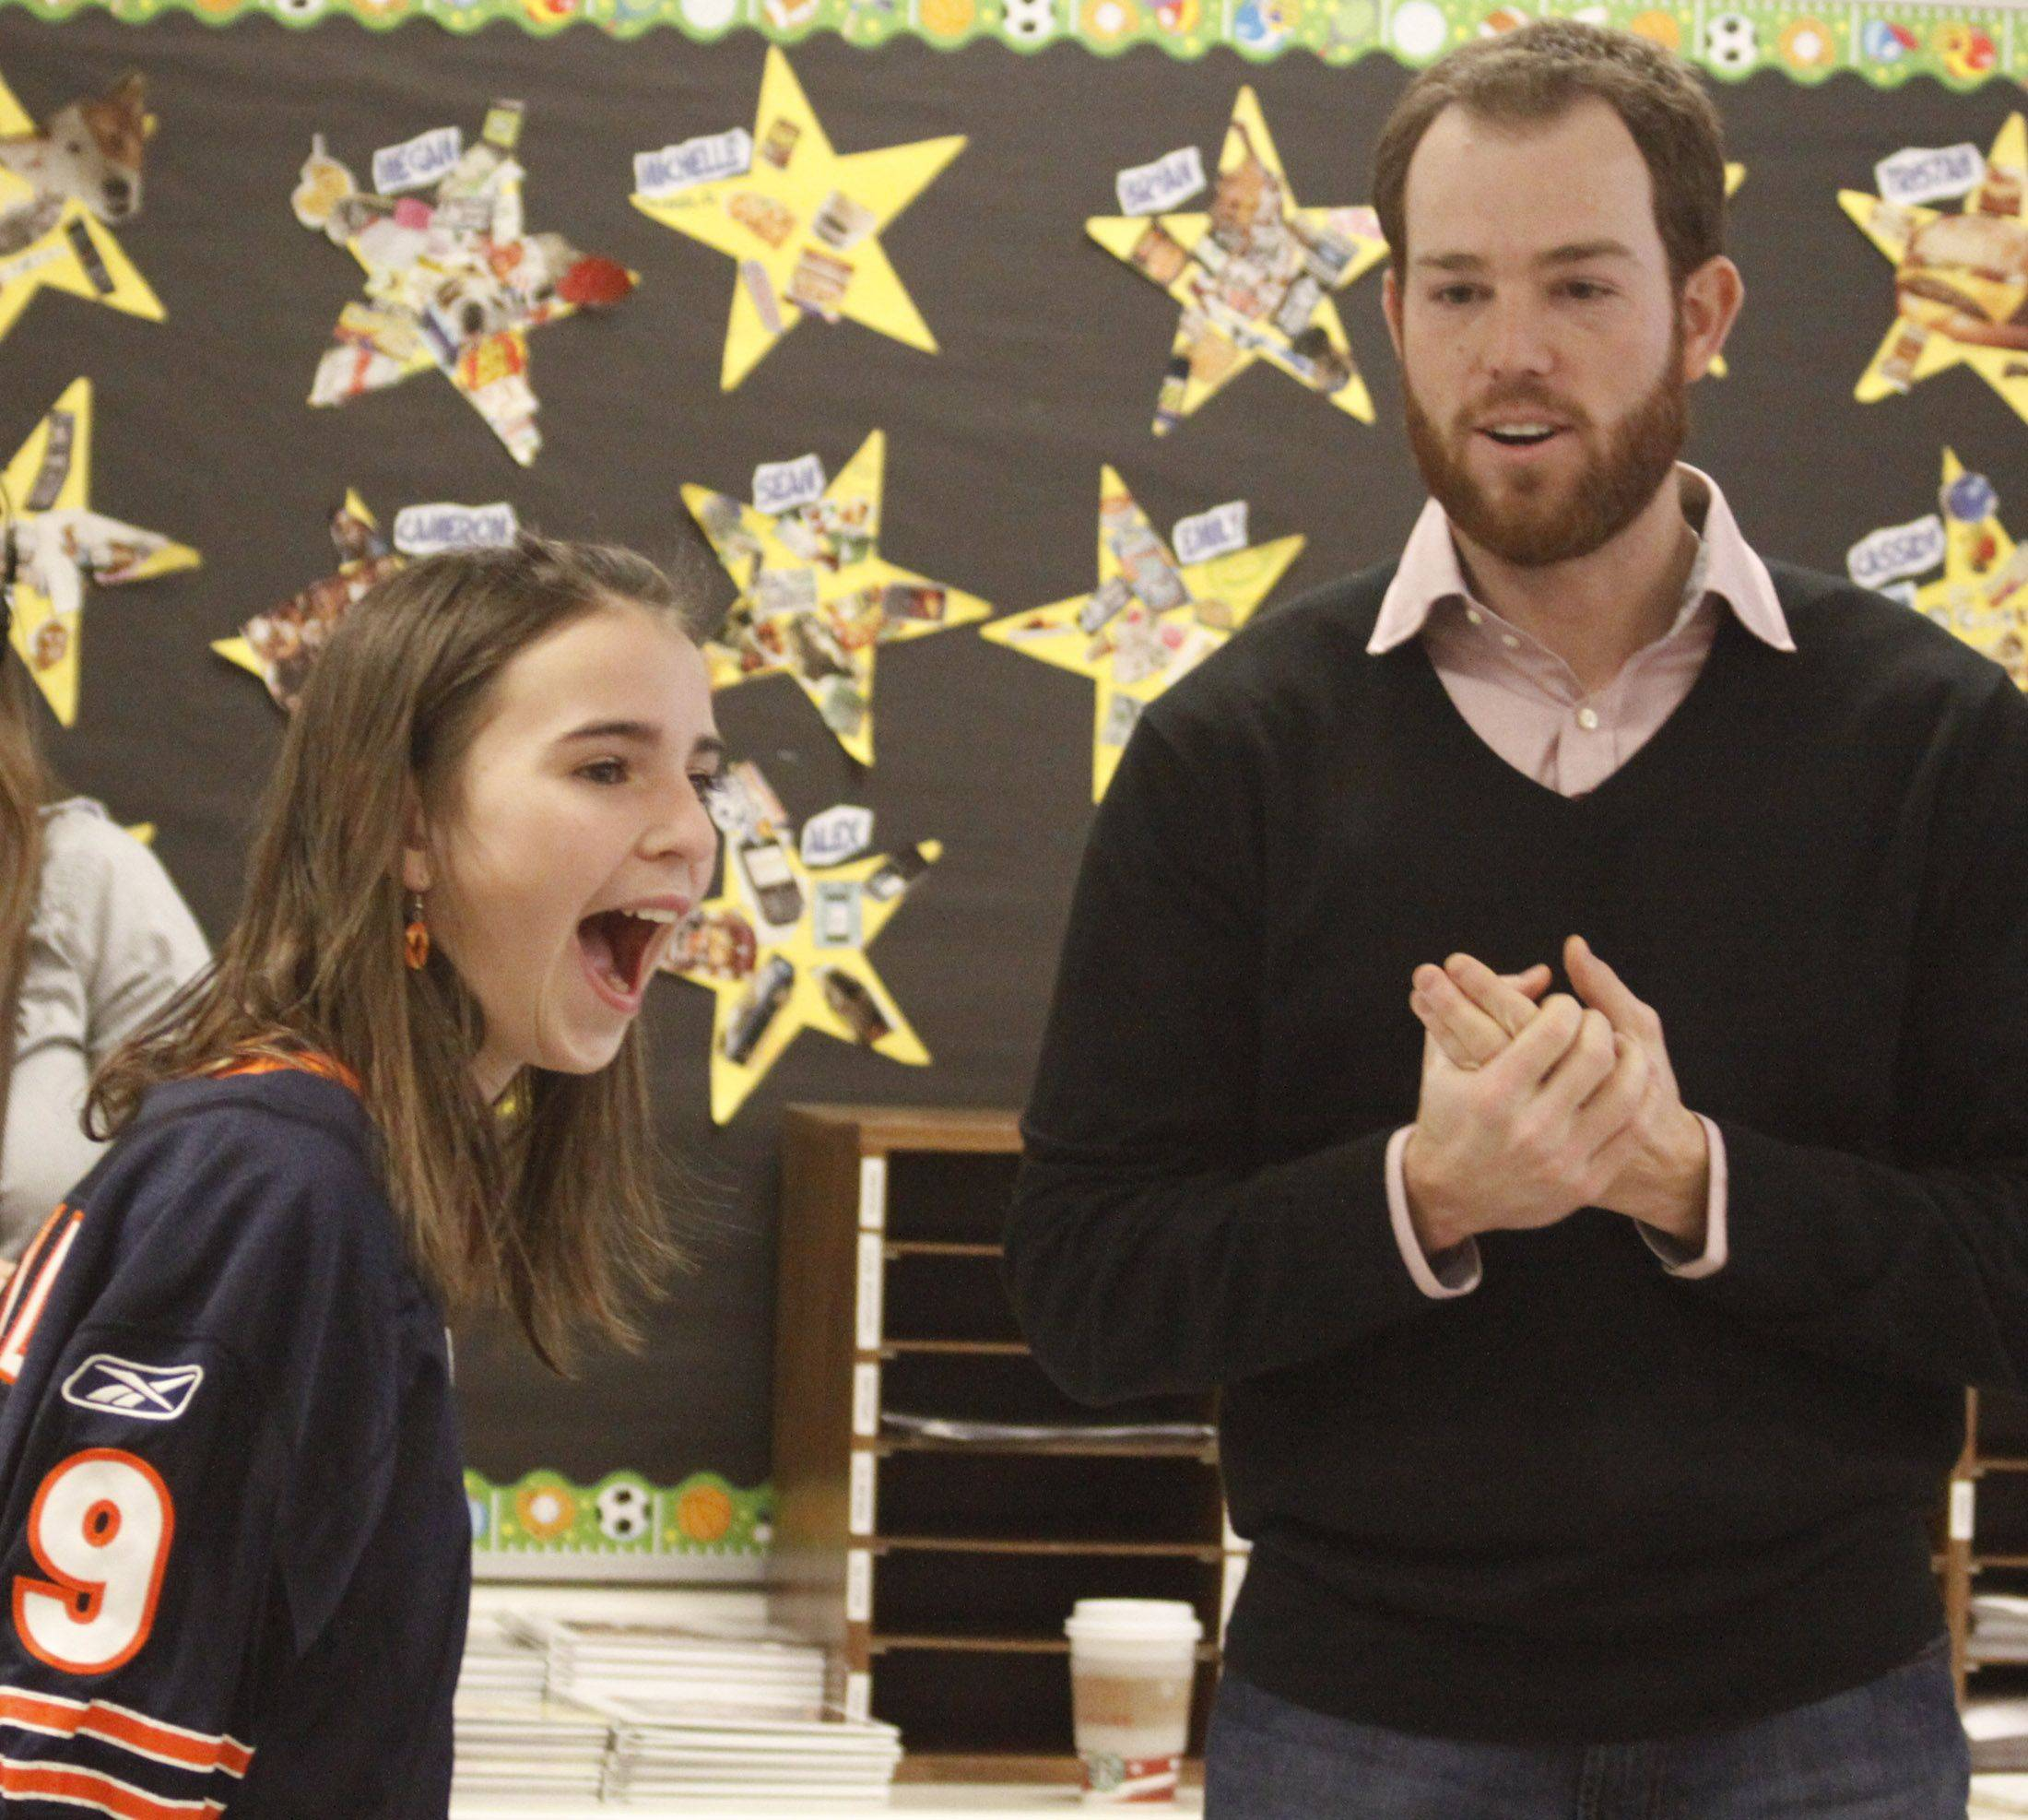 Wheaton fifth-grader Ava Childs won the NFL's Super Kid essay contest sponsored by Cartoon Network and got the chance to have Bears kicker Robbie Gould come to her school.